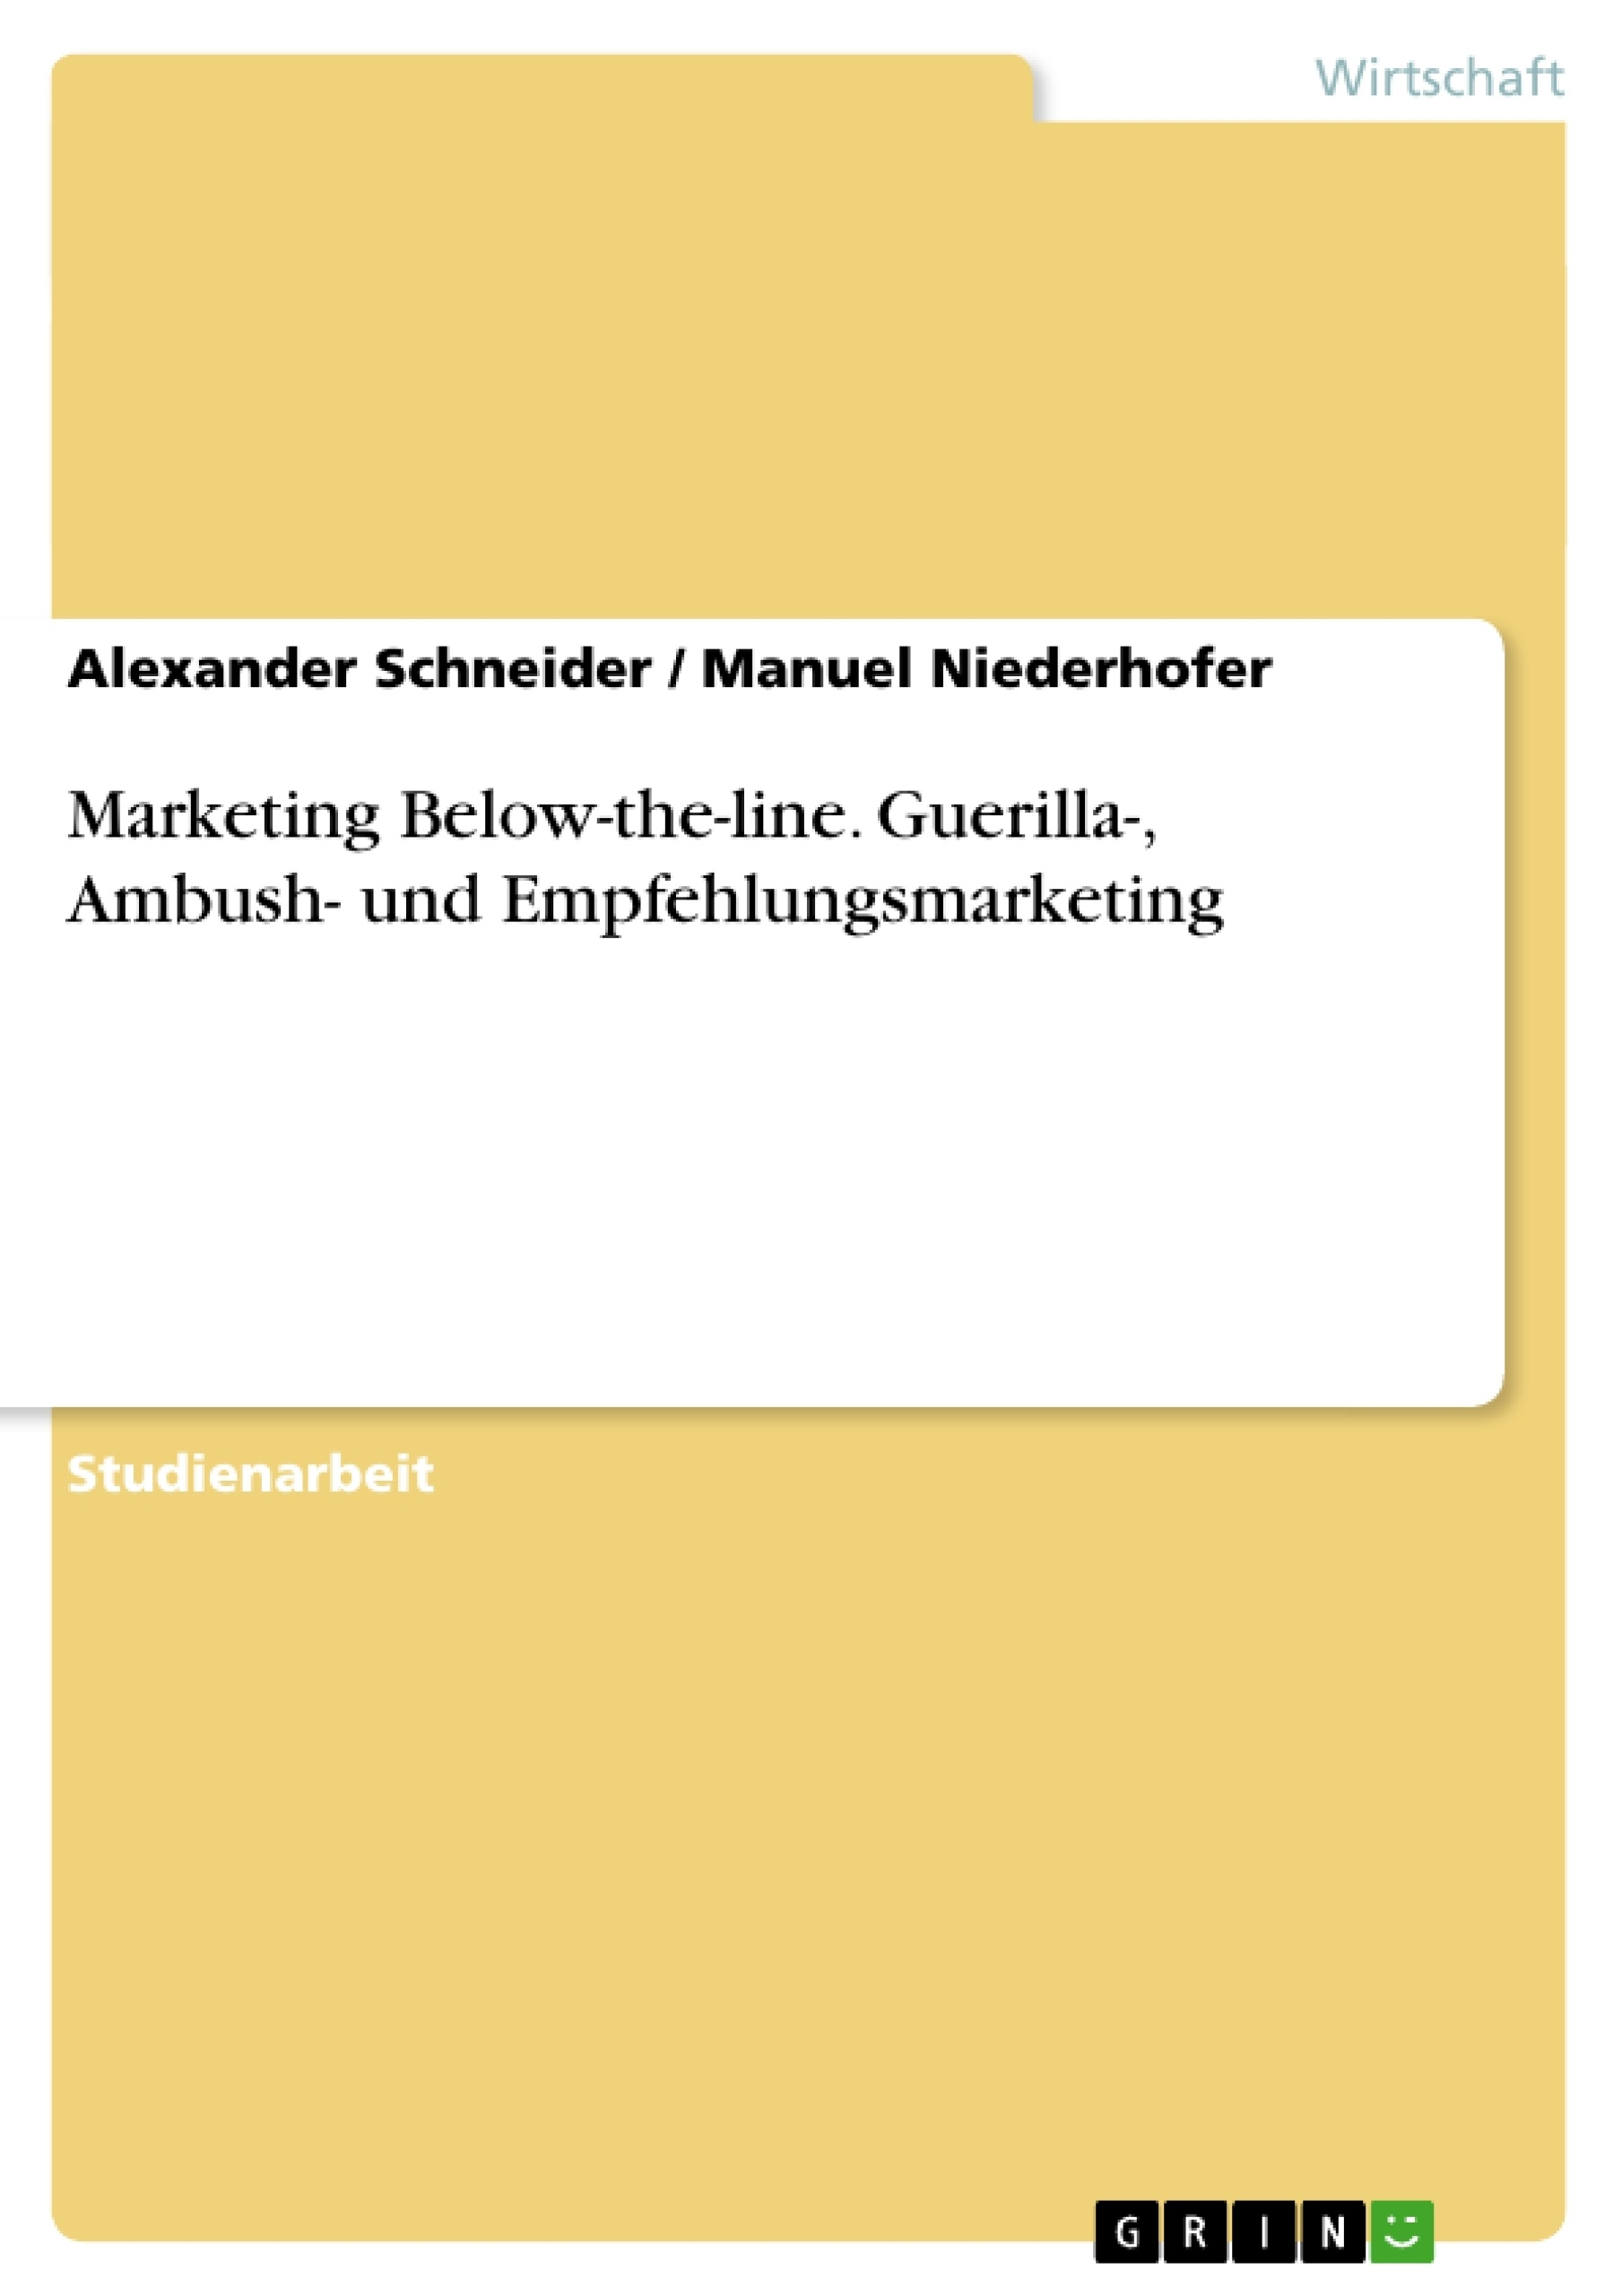 Titel: Marketing Below-the-line. Guerilla-, Ambush- und Empfehlungsmarketing